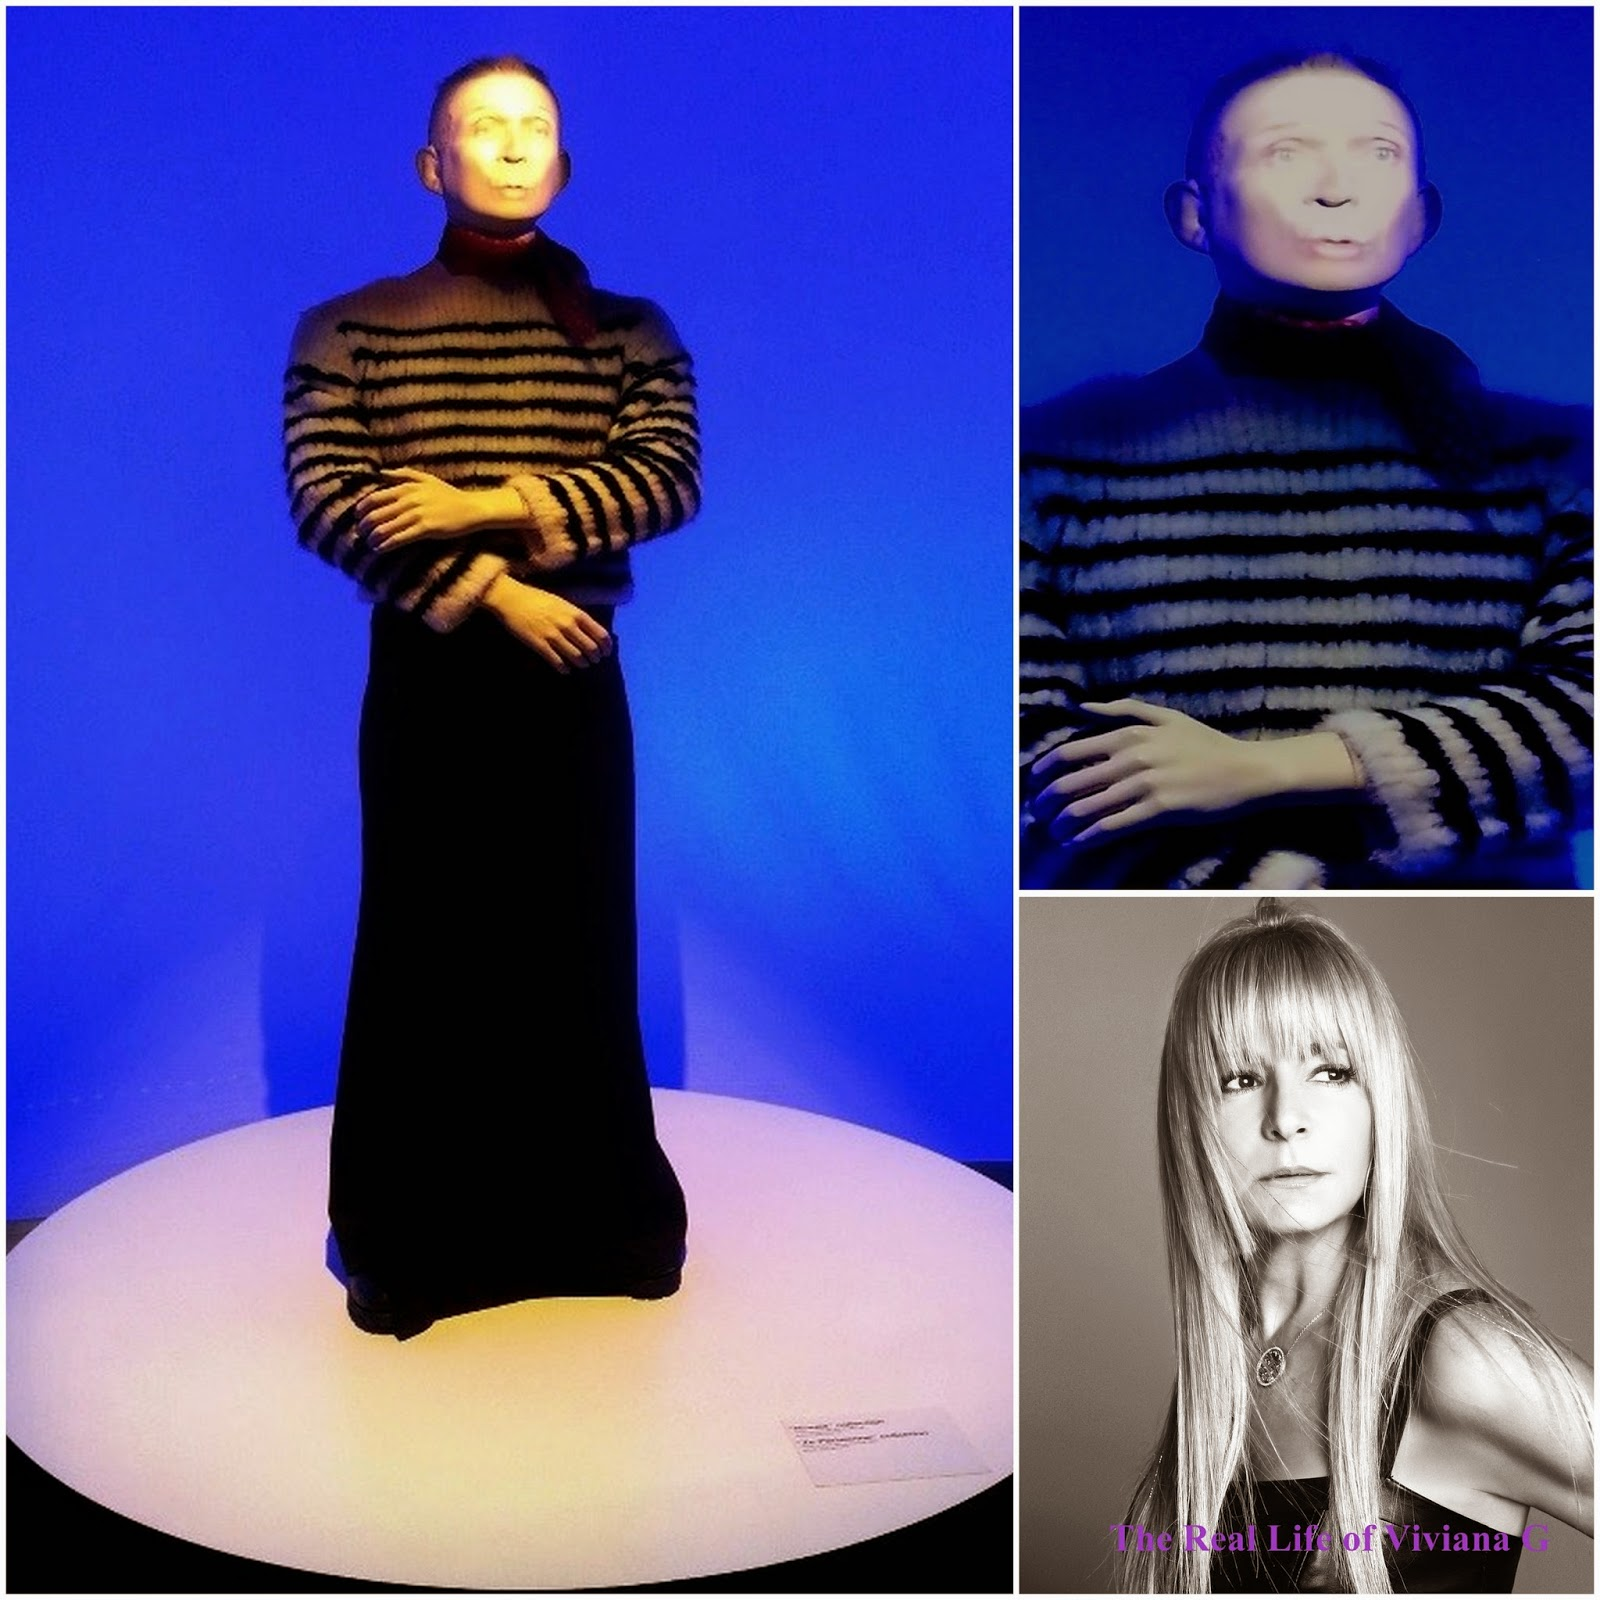 The Real Life of Viviana G: Salute to You, Jean Paul Gaultier!